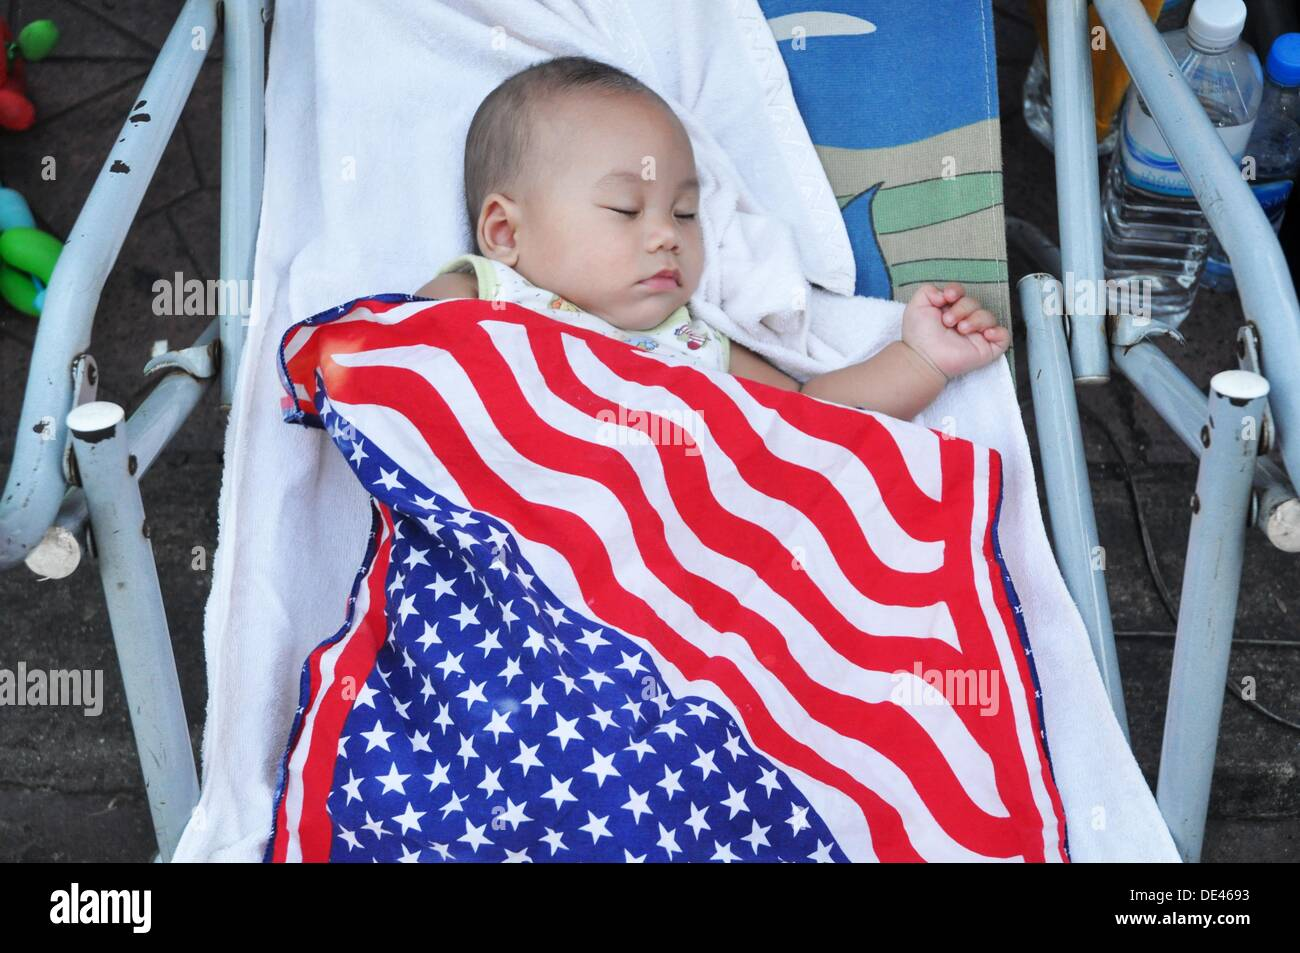 007b90385 Bangkok (Thailand): baby sleeping covered with an American flag at Khao San  Road